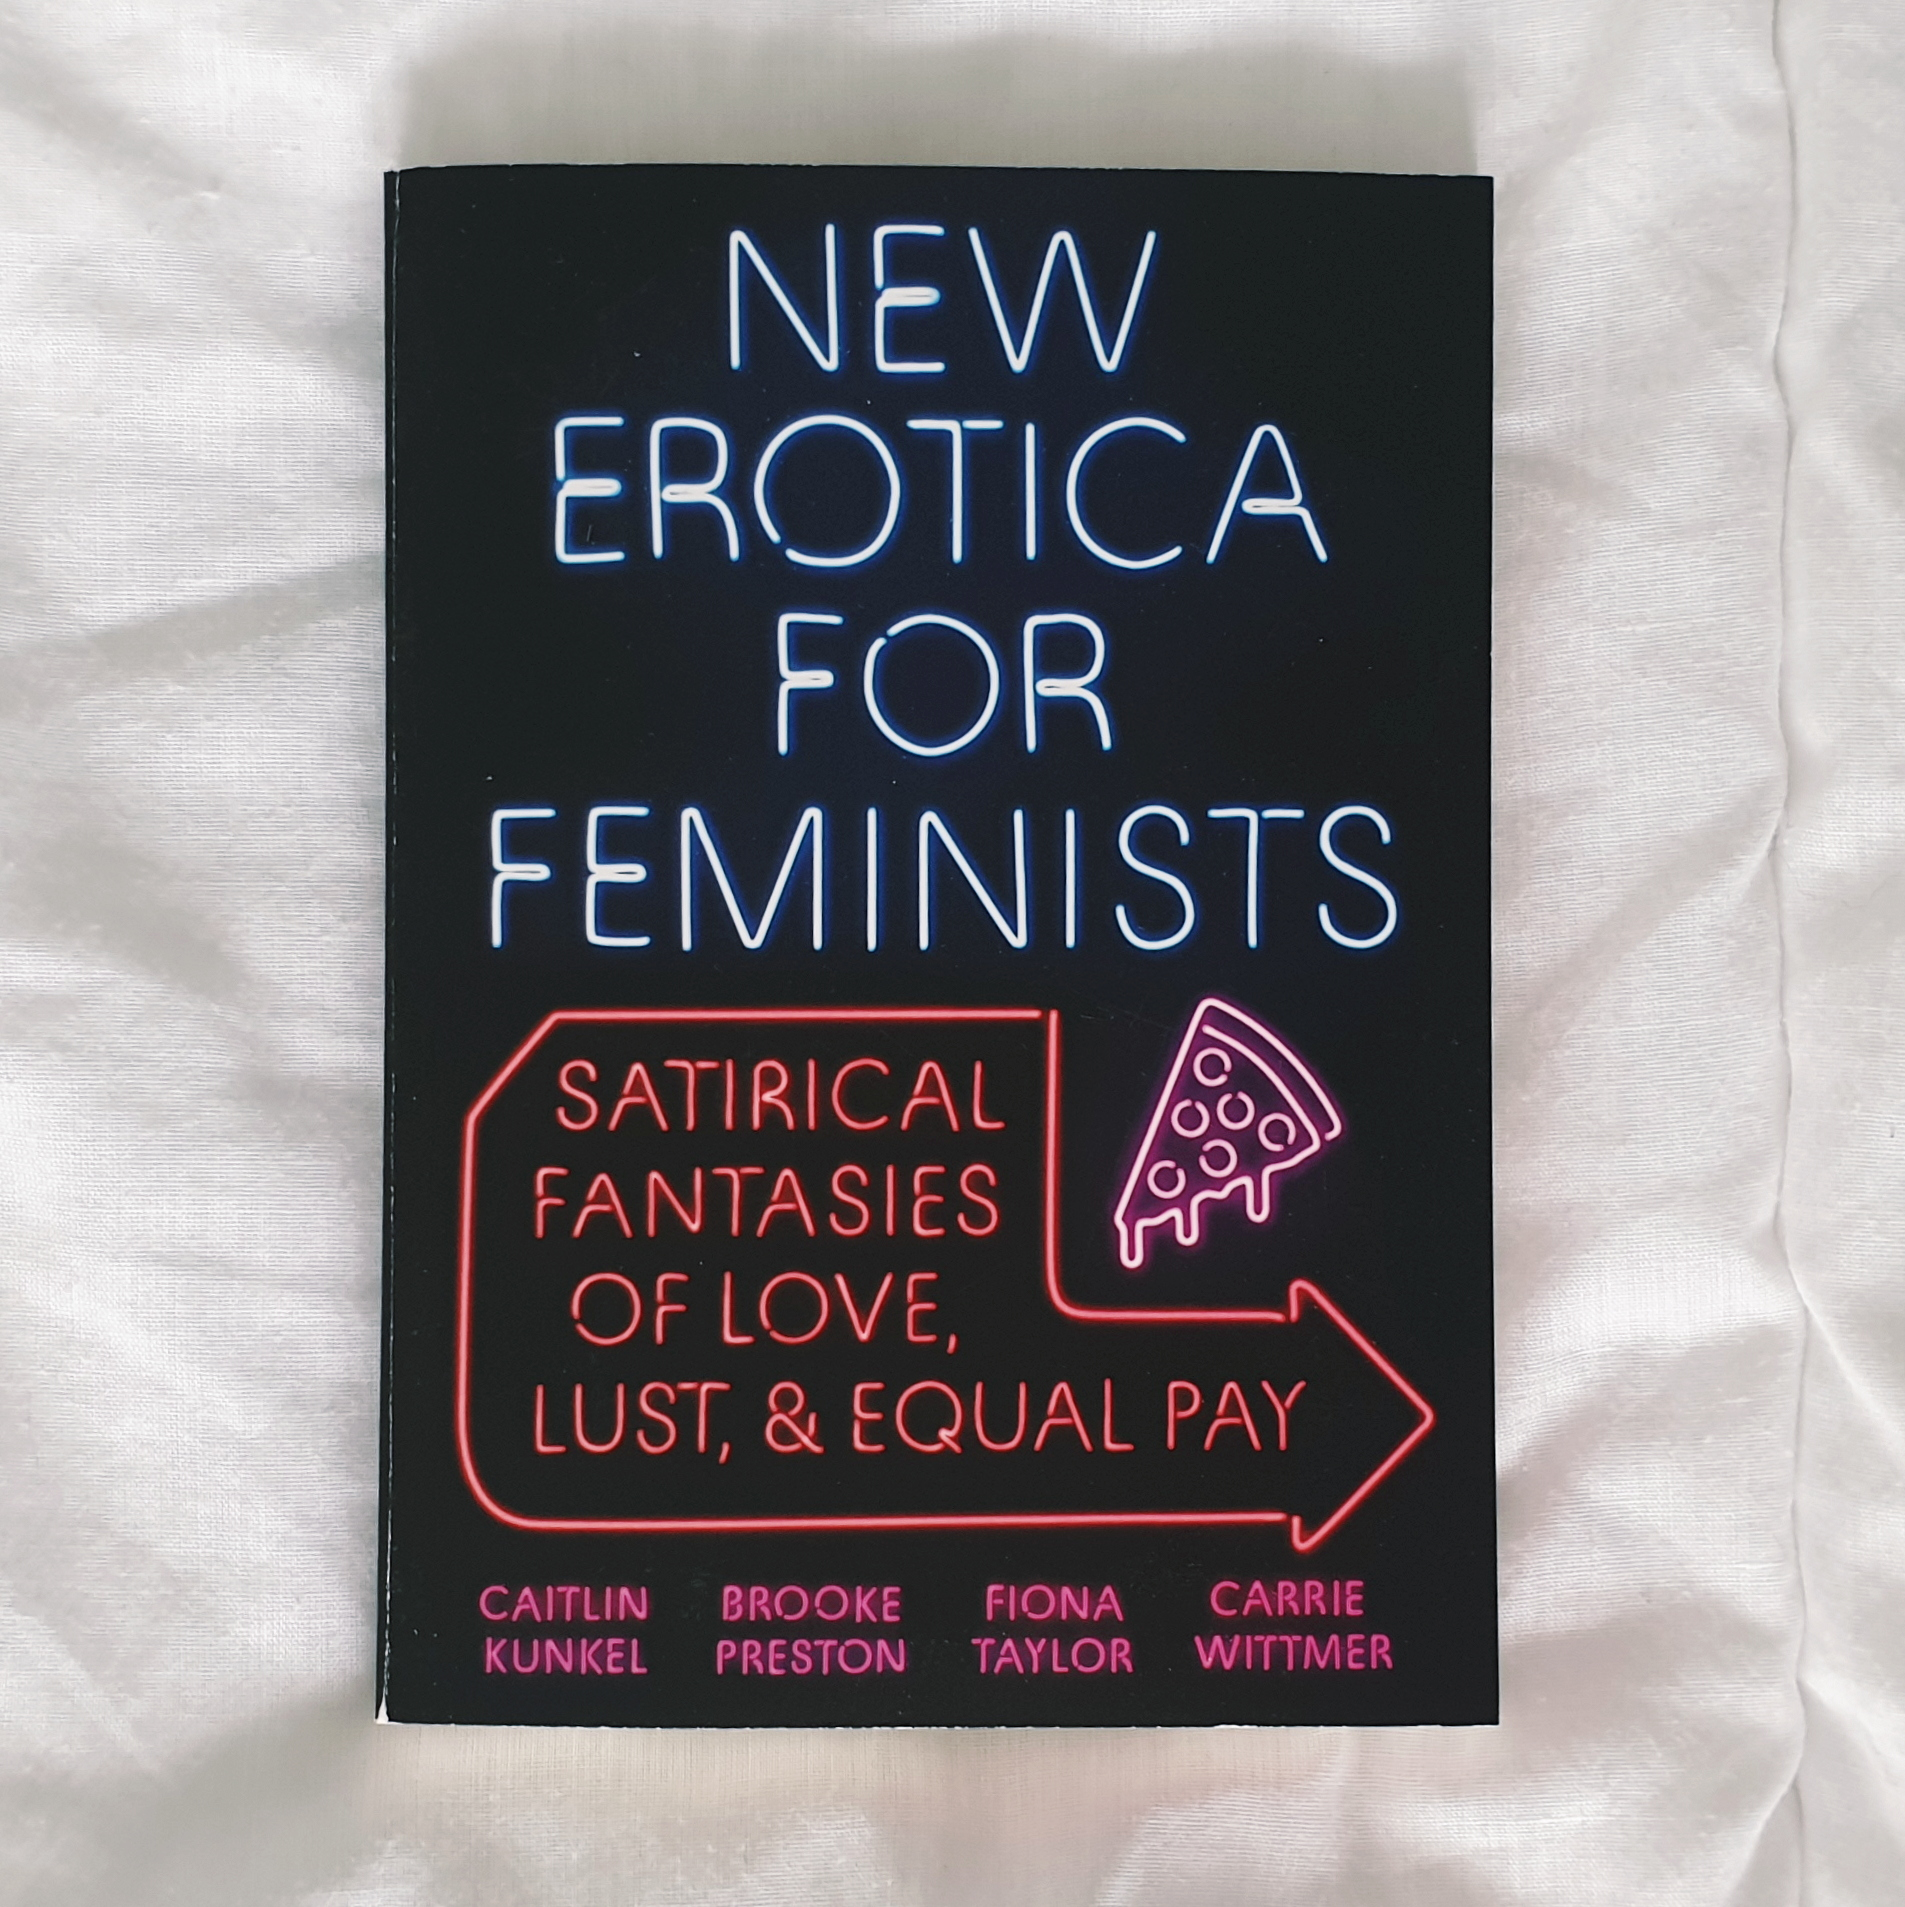 New Erotica for Feminists: Satirical Fantasies of Love, Lust, and Equal Pay by Caitlin Kunkel, Brooke Preston, Fiona Taylor, and Carrie Wittmer